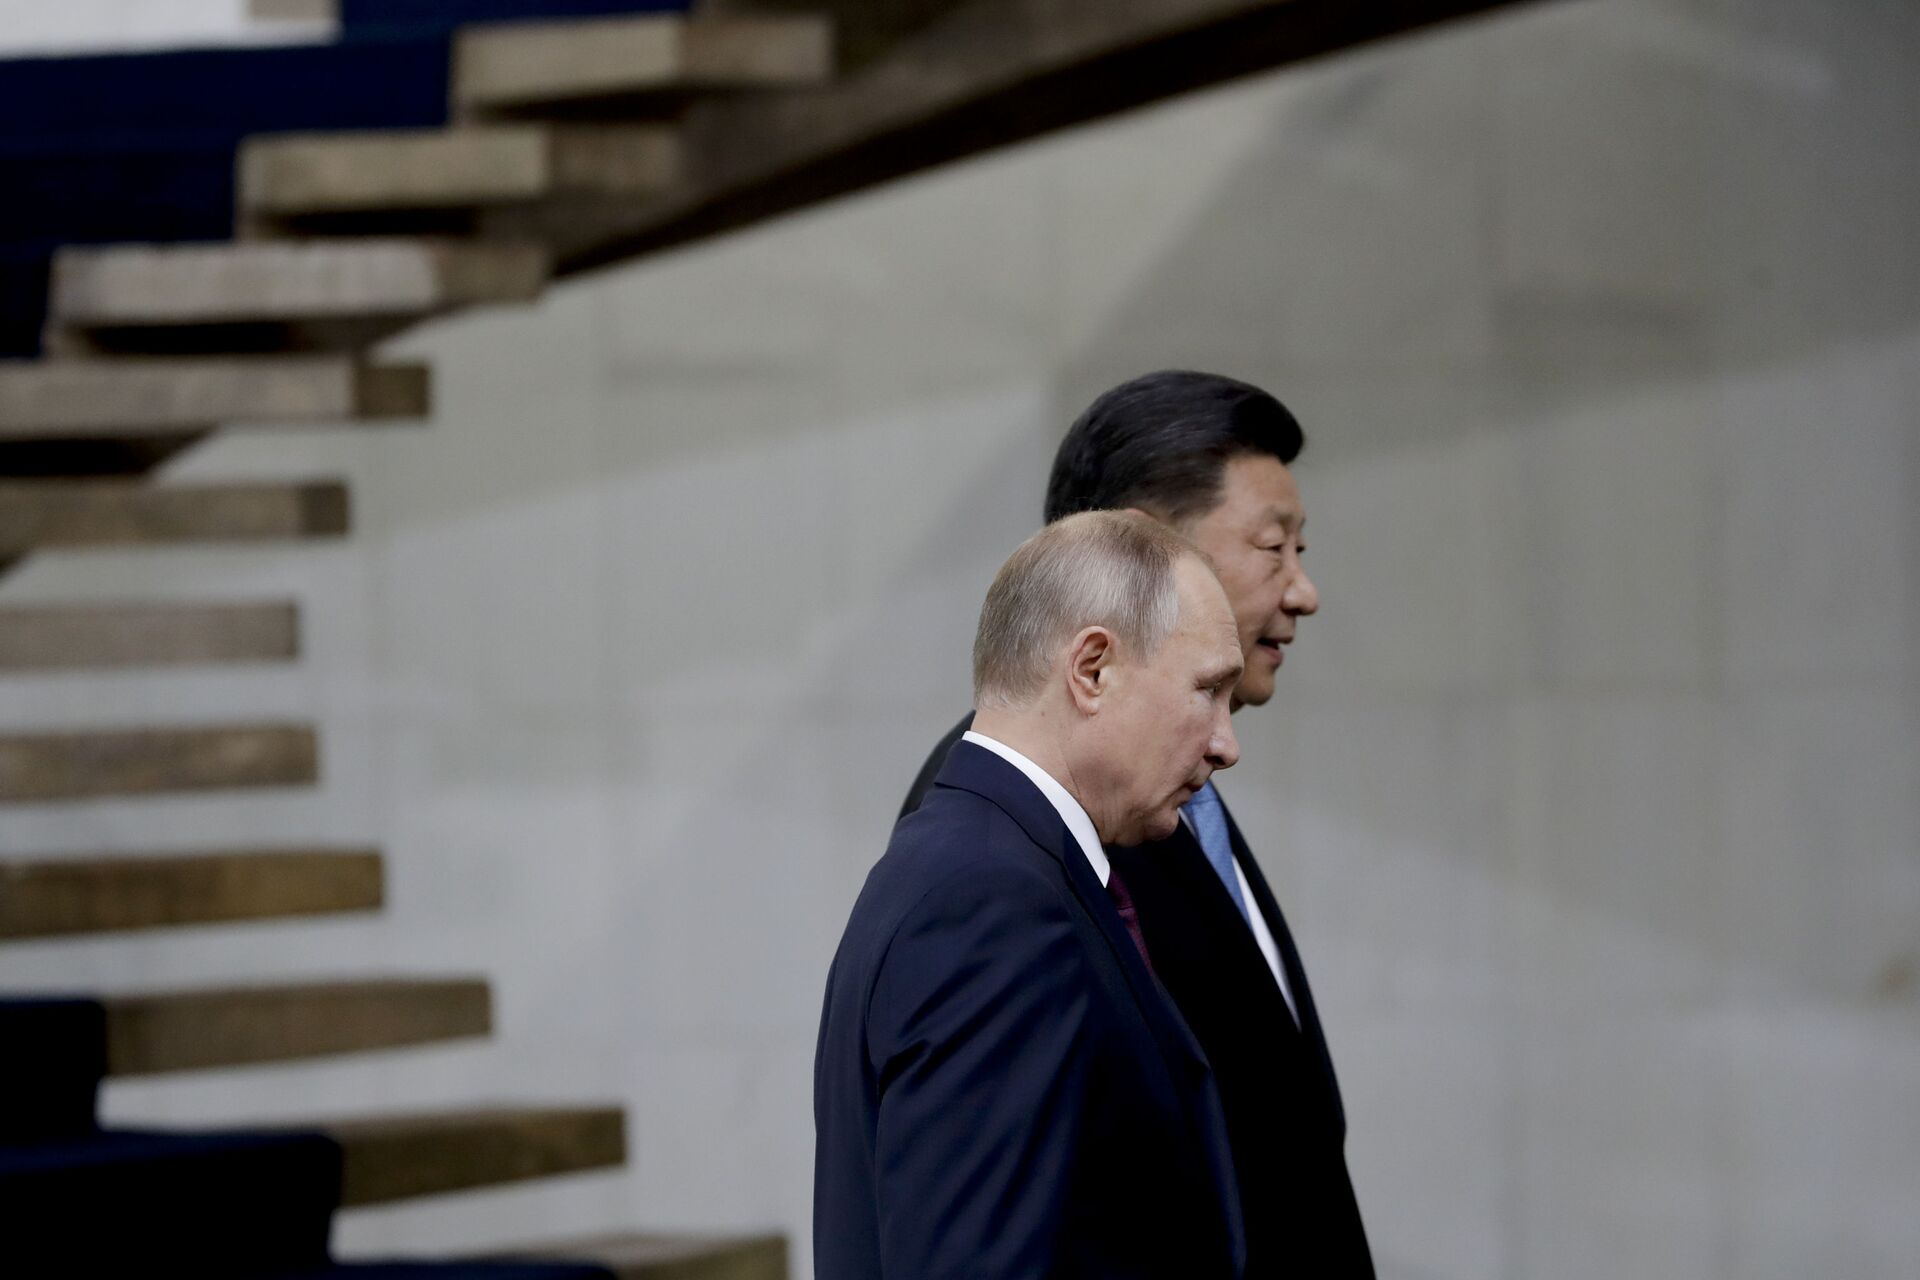 Russia's President Vladimir Putin and China's President Xi Jinping walk after the family photo of leaders of the BRICS emerging economies at the Itamaraty palace in Brasilia, Brazil, Thursday, Nov. 14, 2019 - Sputnik International, 1920, 06.10.2021